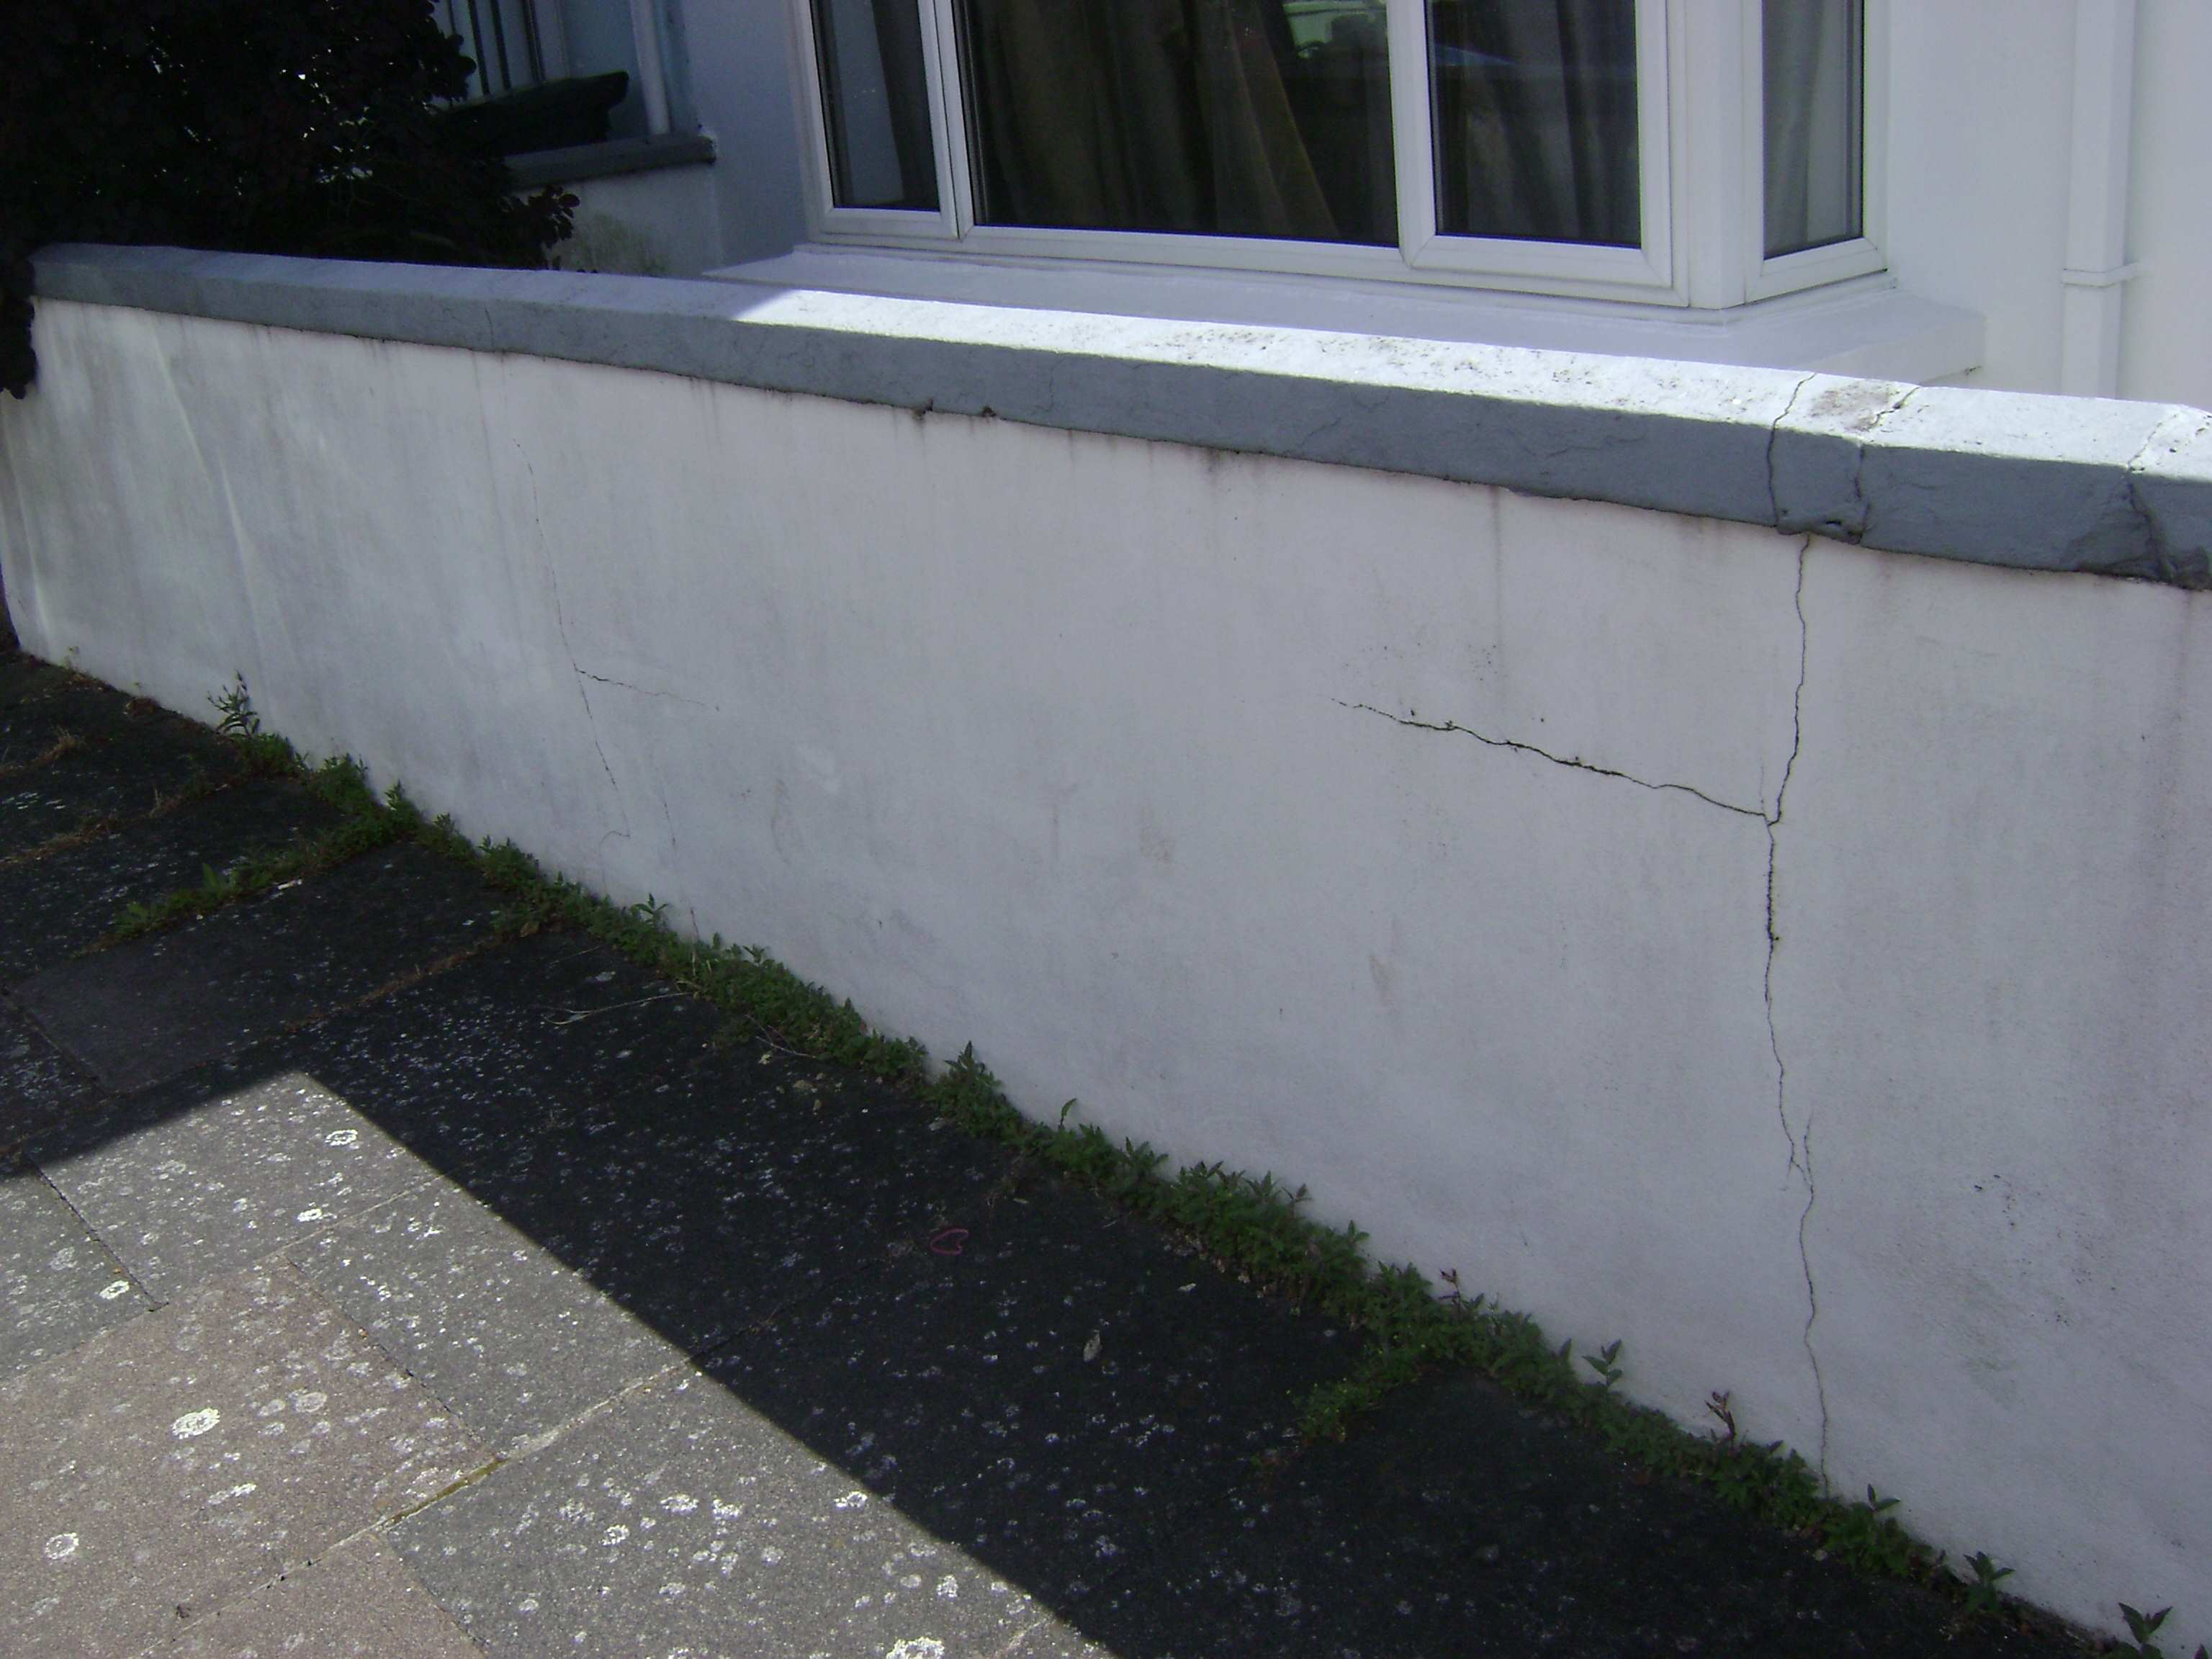 This garden wall had become badly cracked and blown over the years